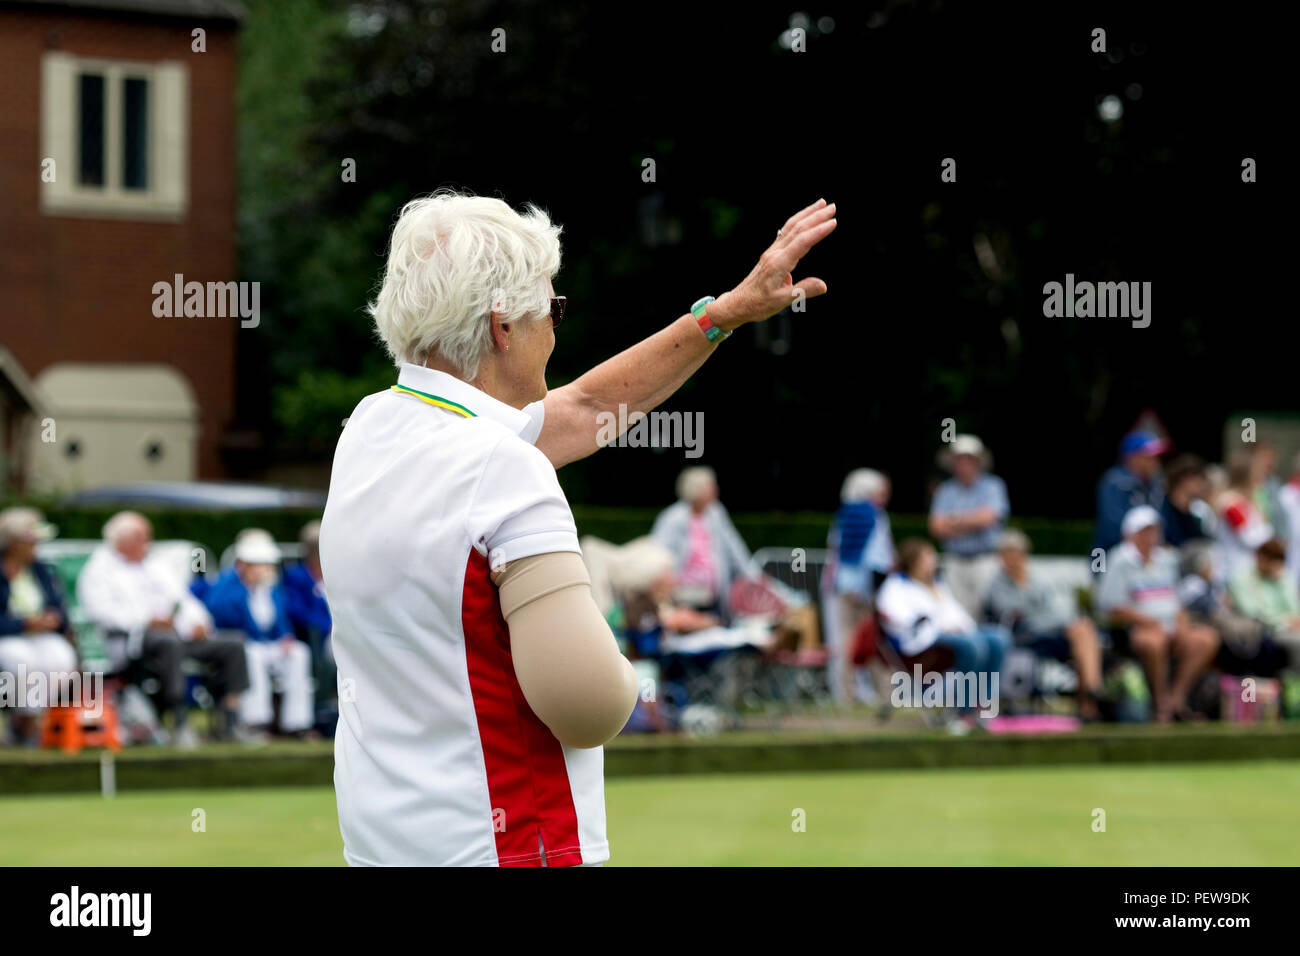 A player signalling at the national women`s lawn bowls championships, Leamington Spa, UK - Stock Image